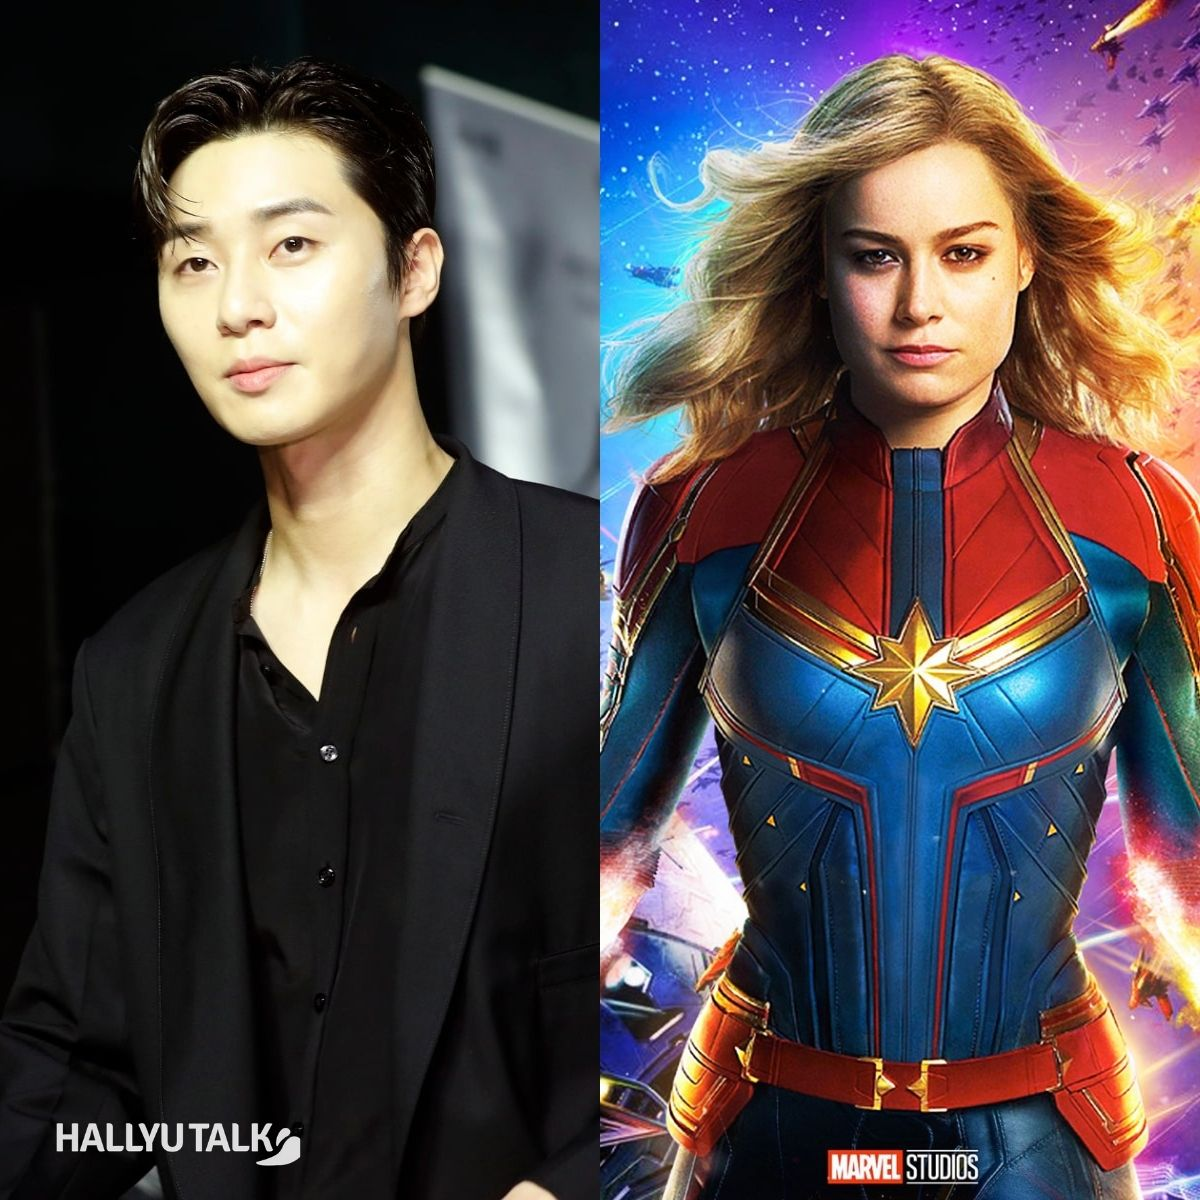 Park Seo Joon to star in MCU's Captain Marvel 20 with Brie Larson ...